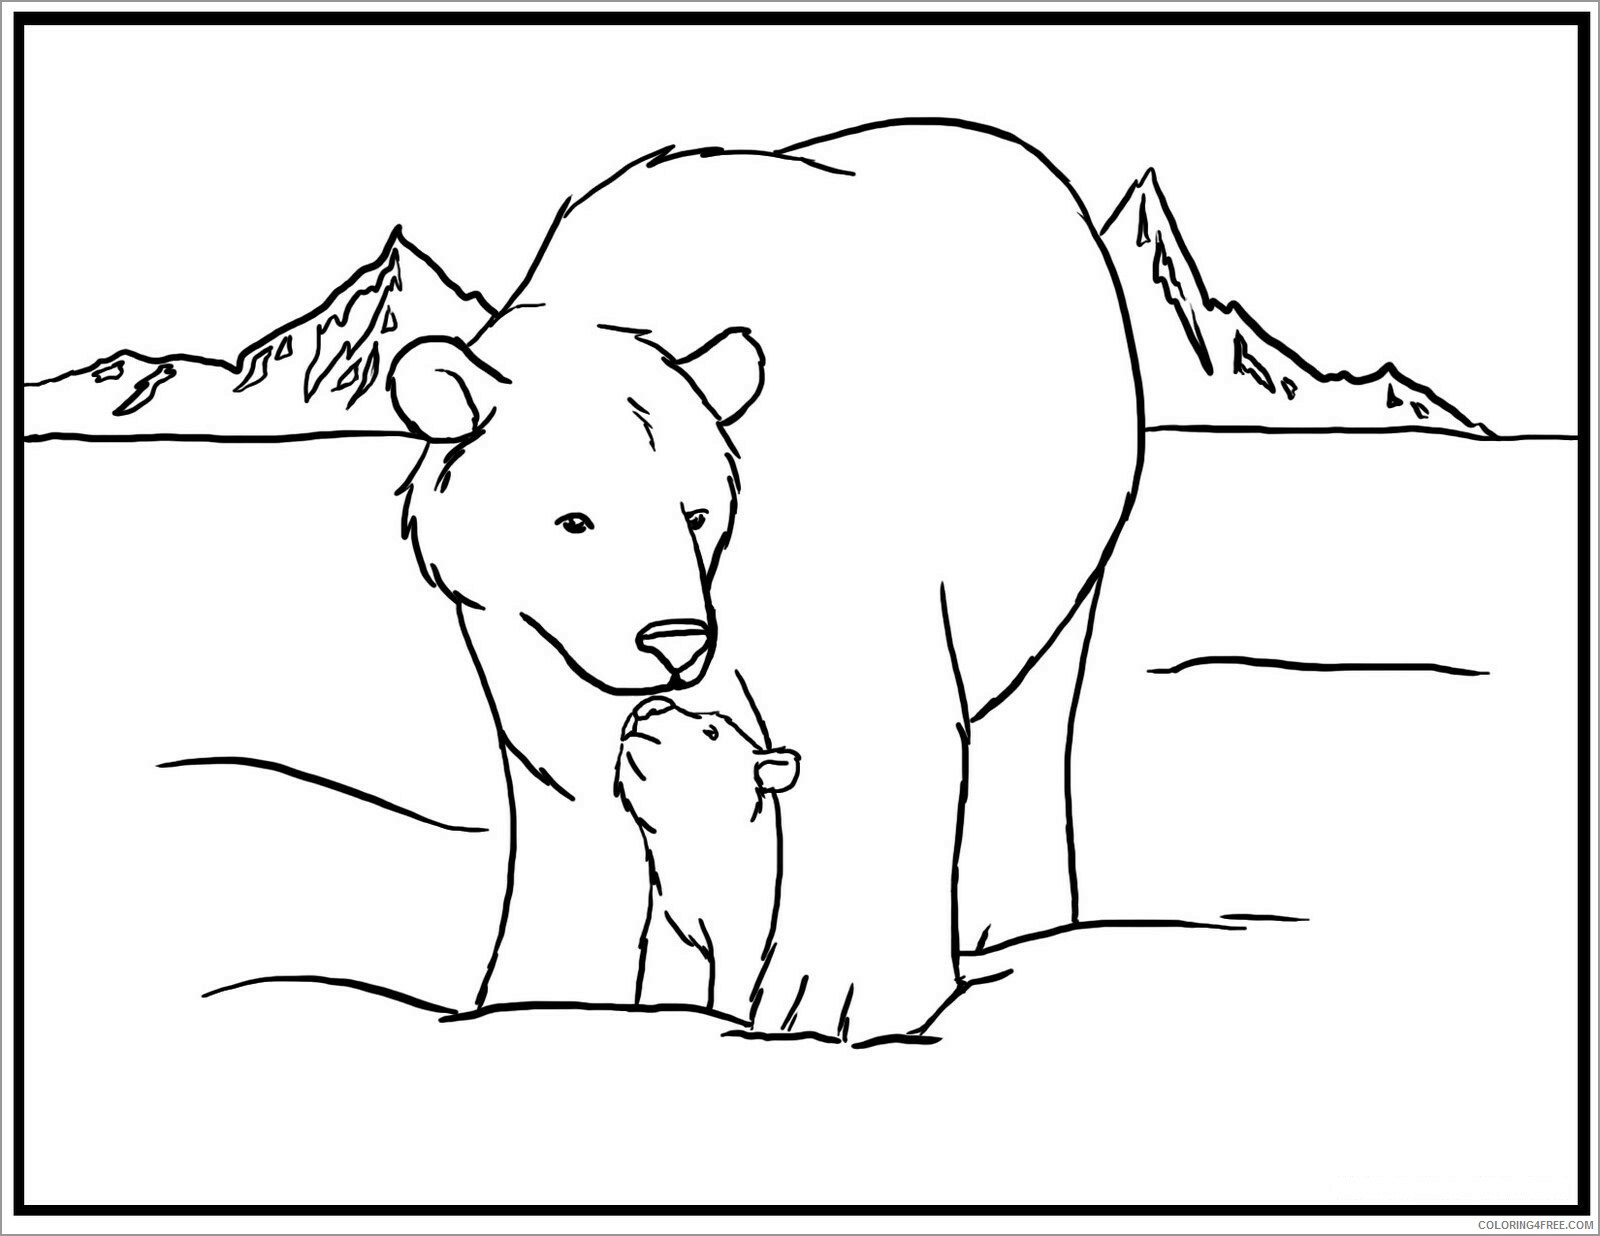 Family Coloring Pages arctic bear family animal Printable 2021 2431 Coloring4free